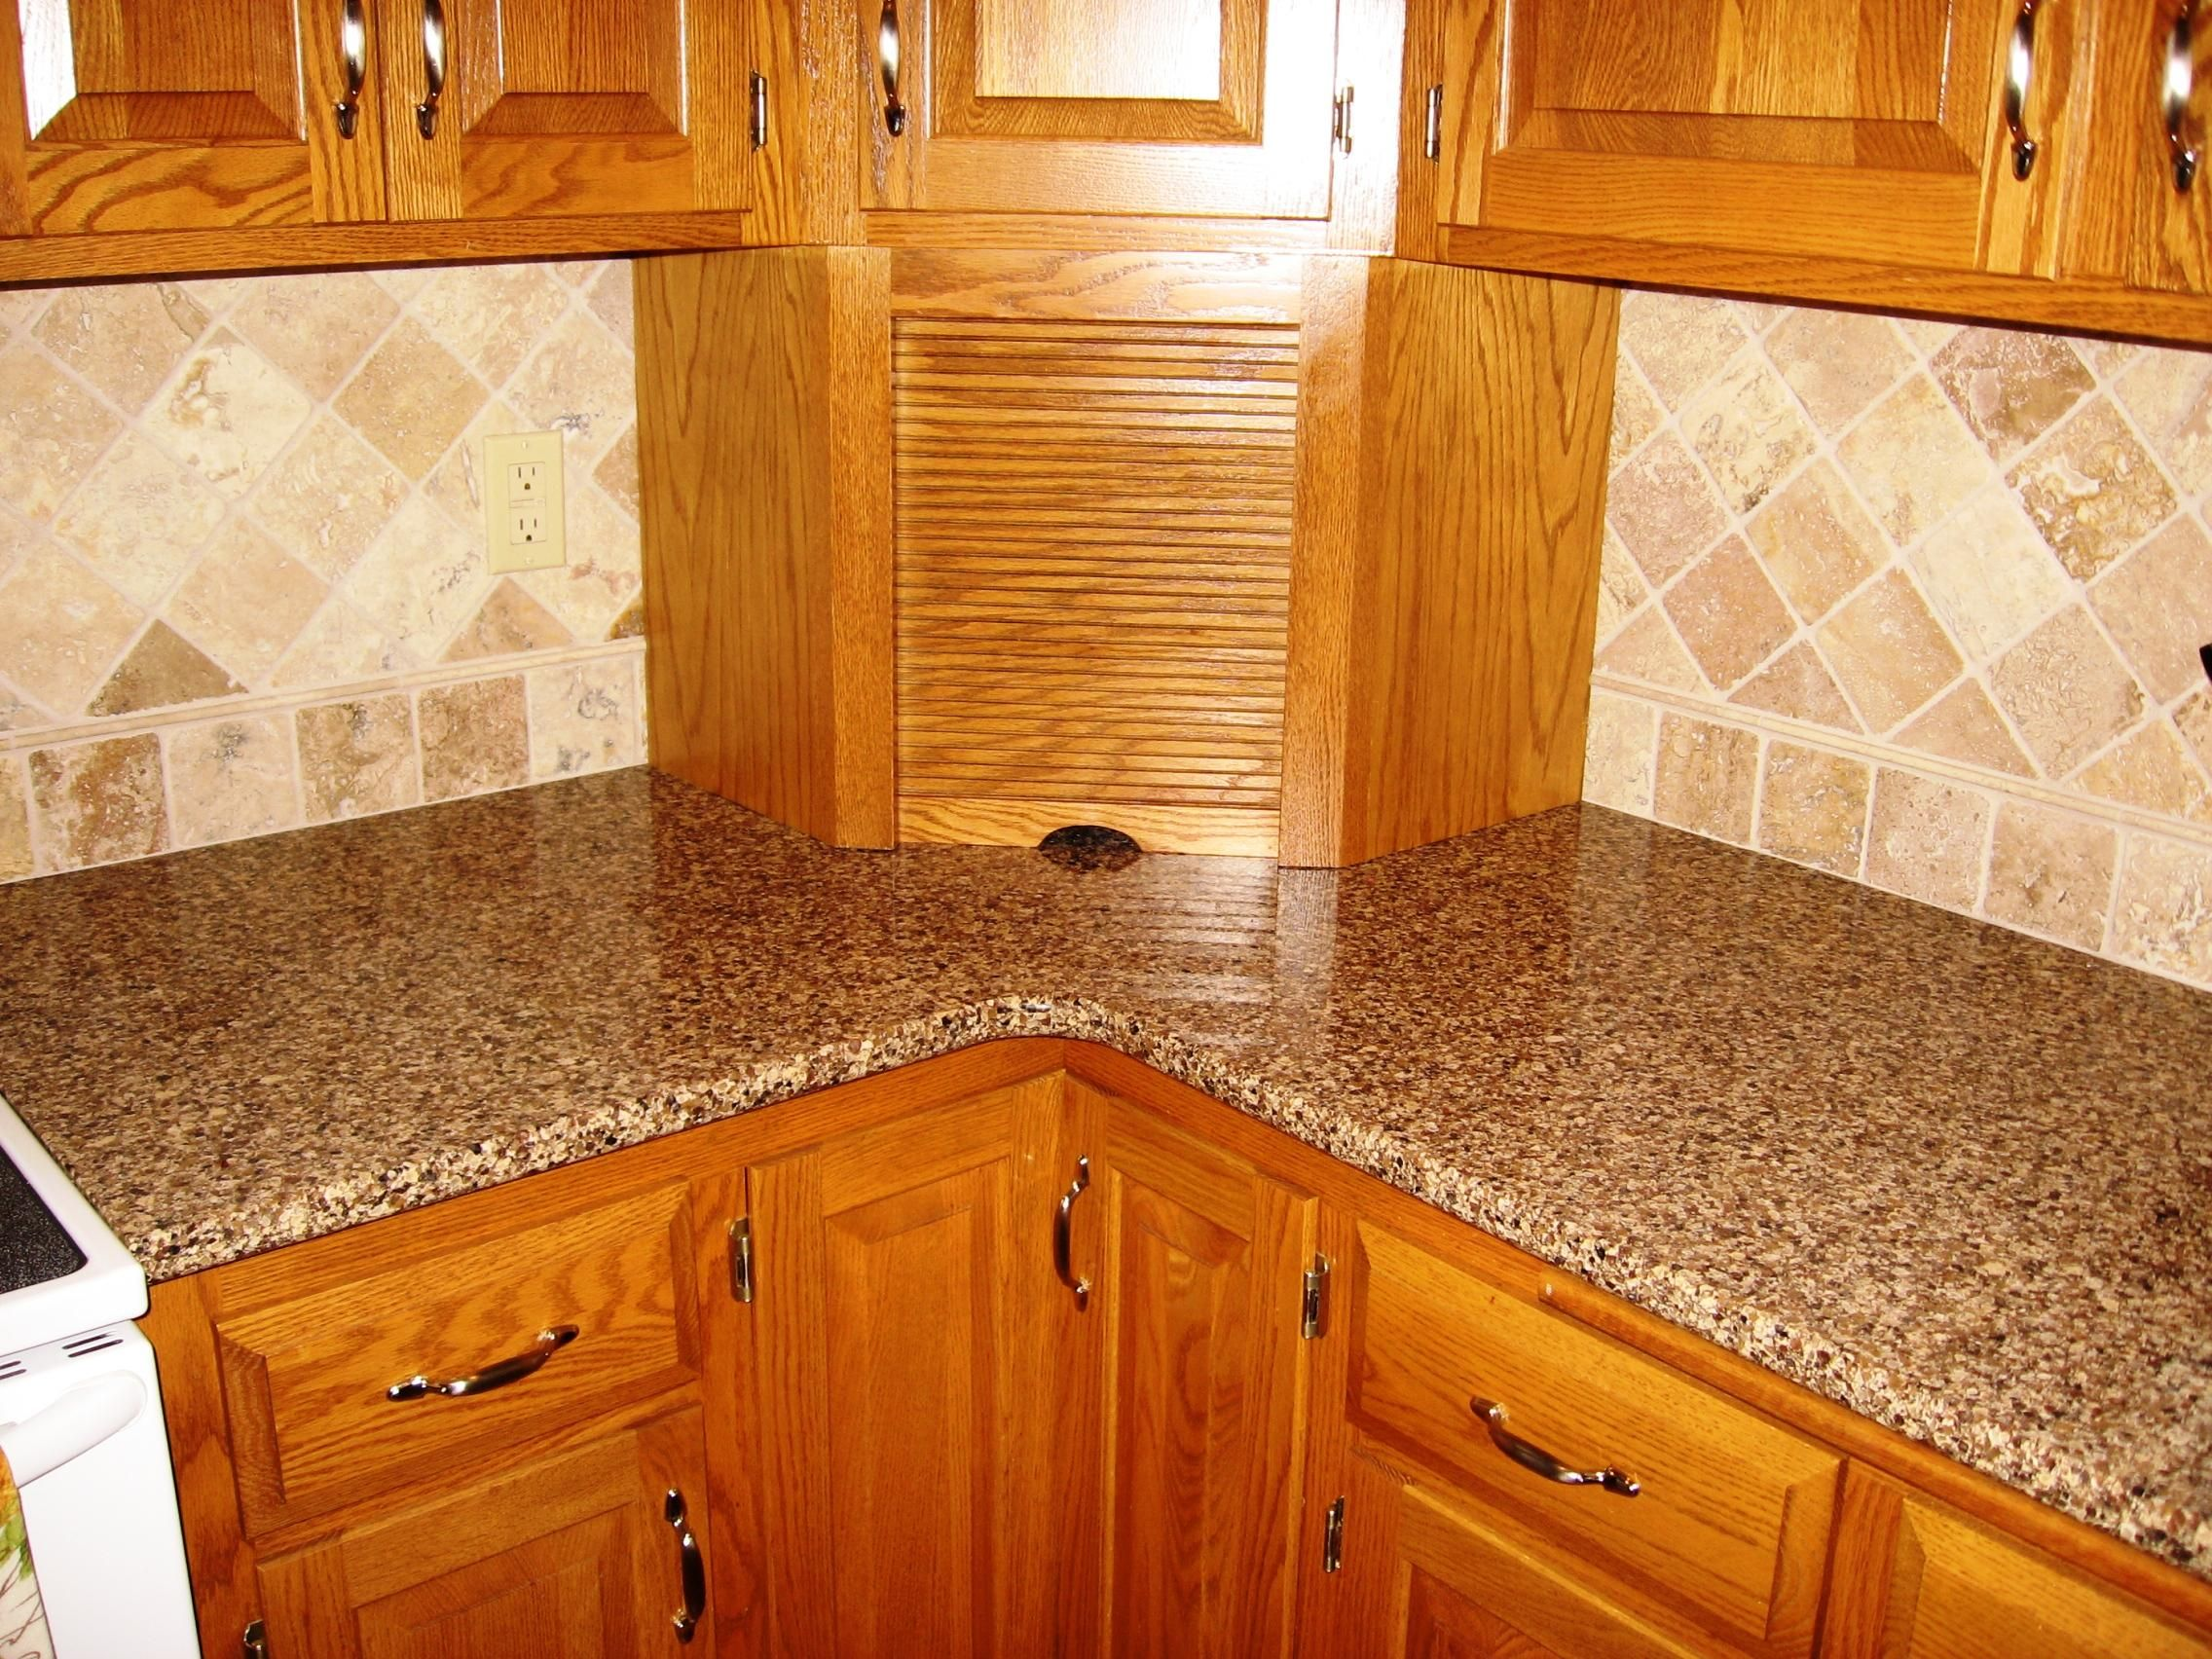 Kitchen quartz countertops with oak cabinets quartz Backsplash ideas quartz countertops